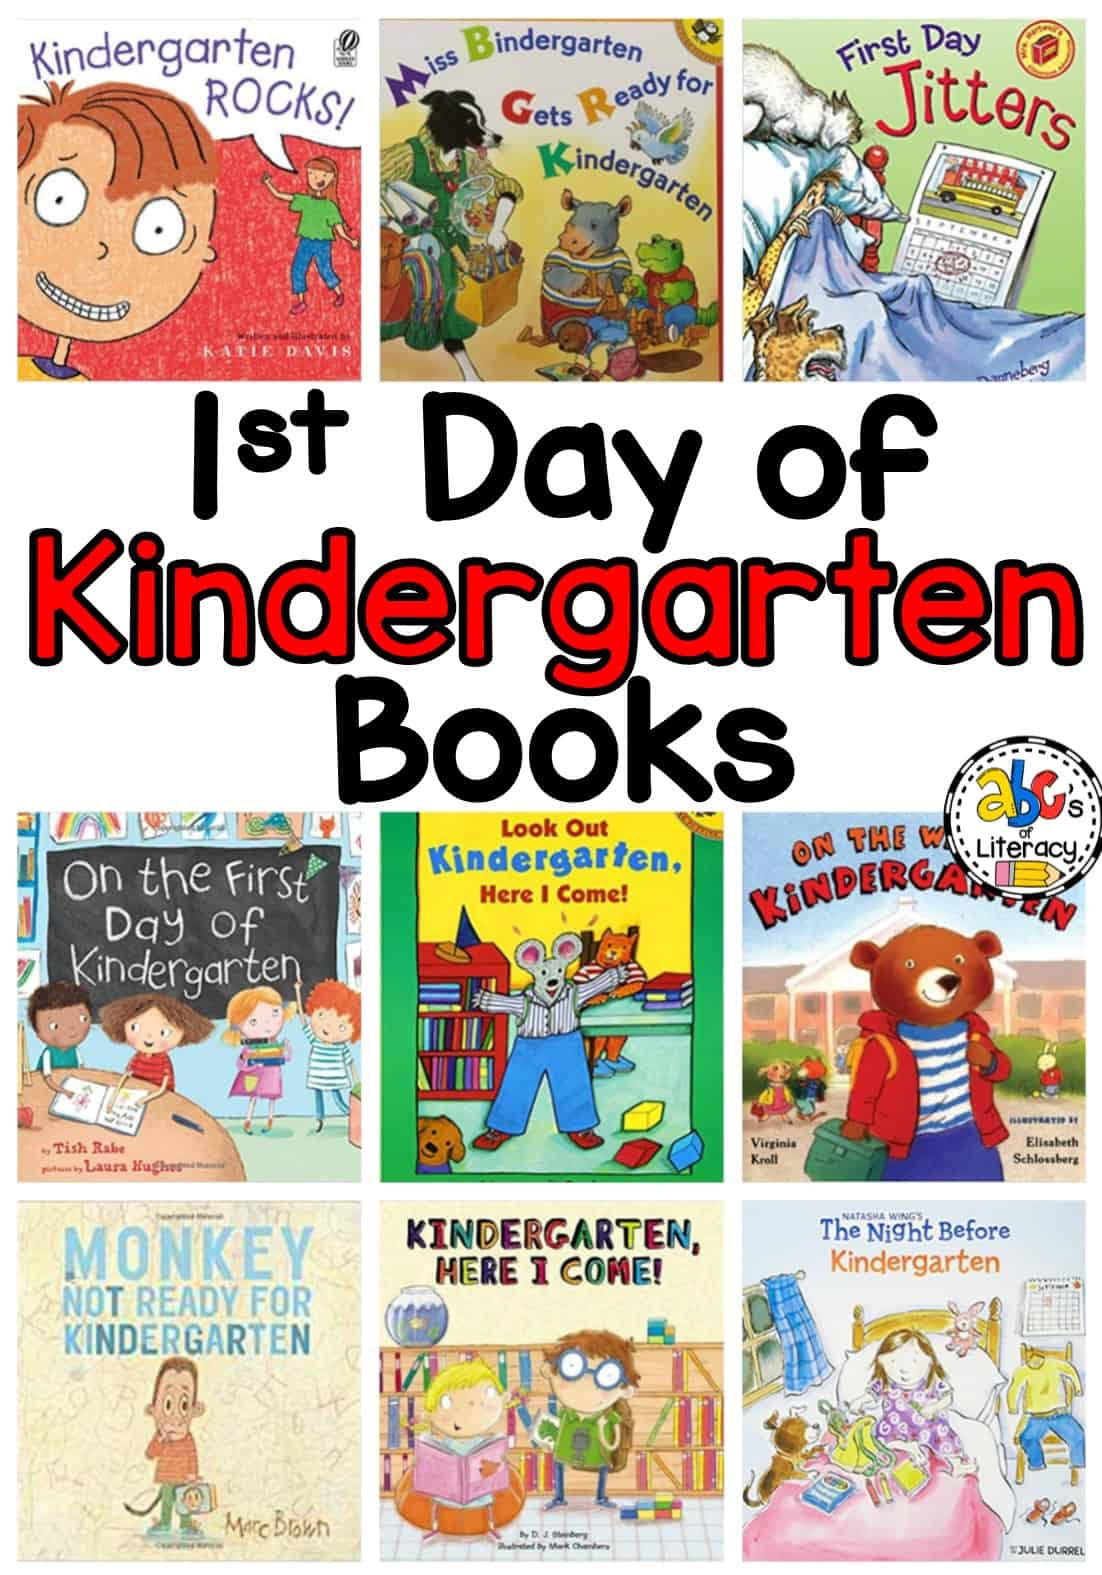 Books About Starting Kindergarten, 1st Day of Kindergarten Books, Books About Beginning Kindergarten, Books About School, School Books, Books About Starting School,